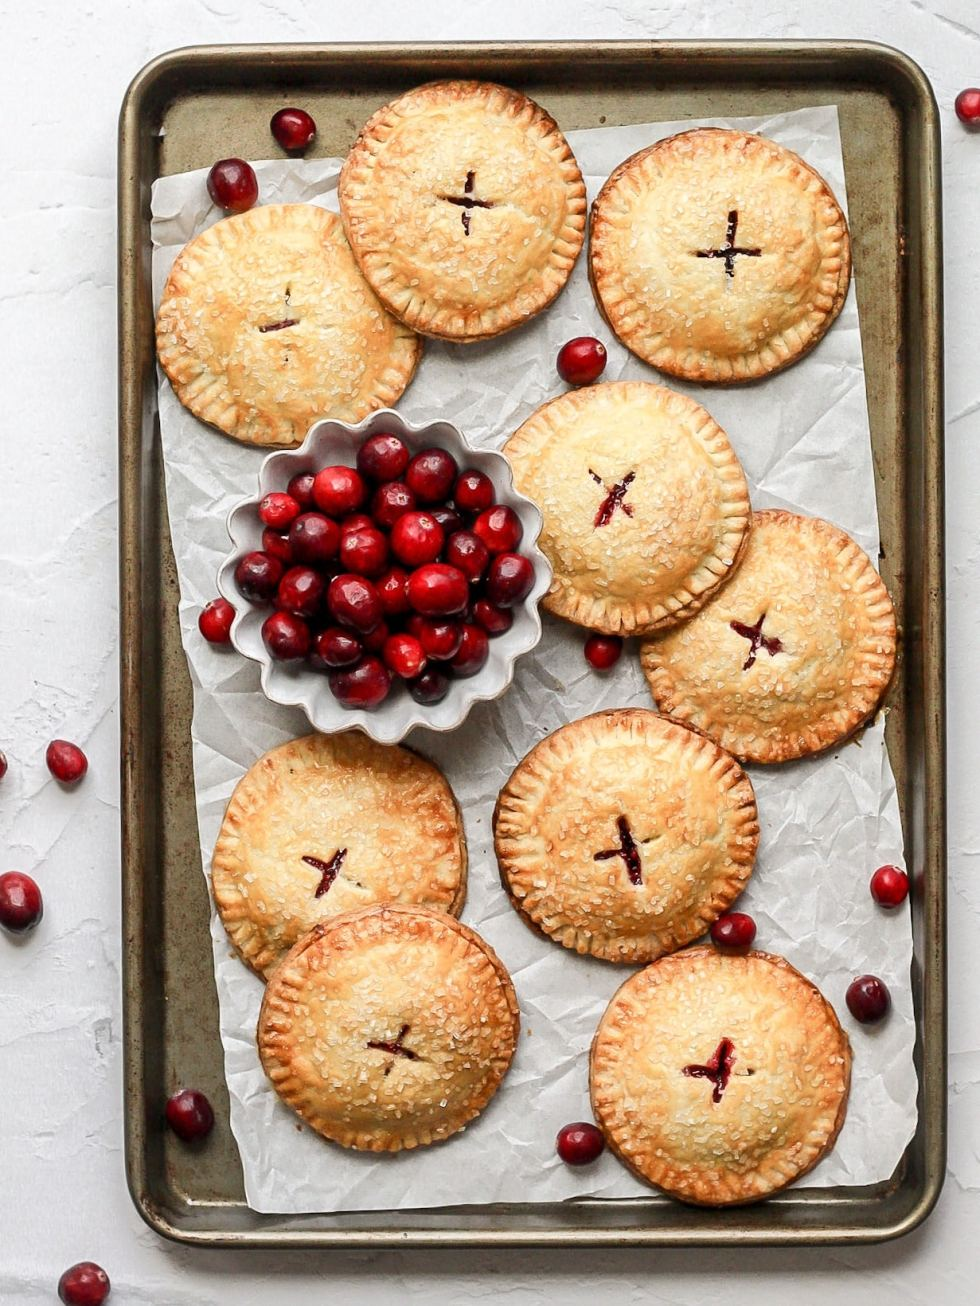 cranberry hand pies and fresh cranberries